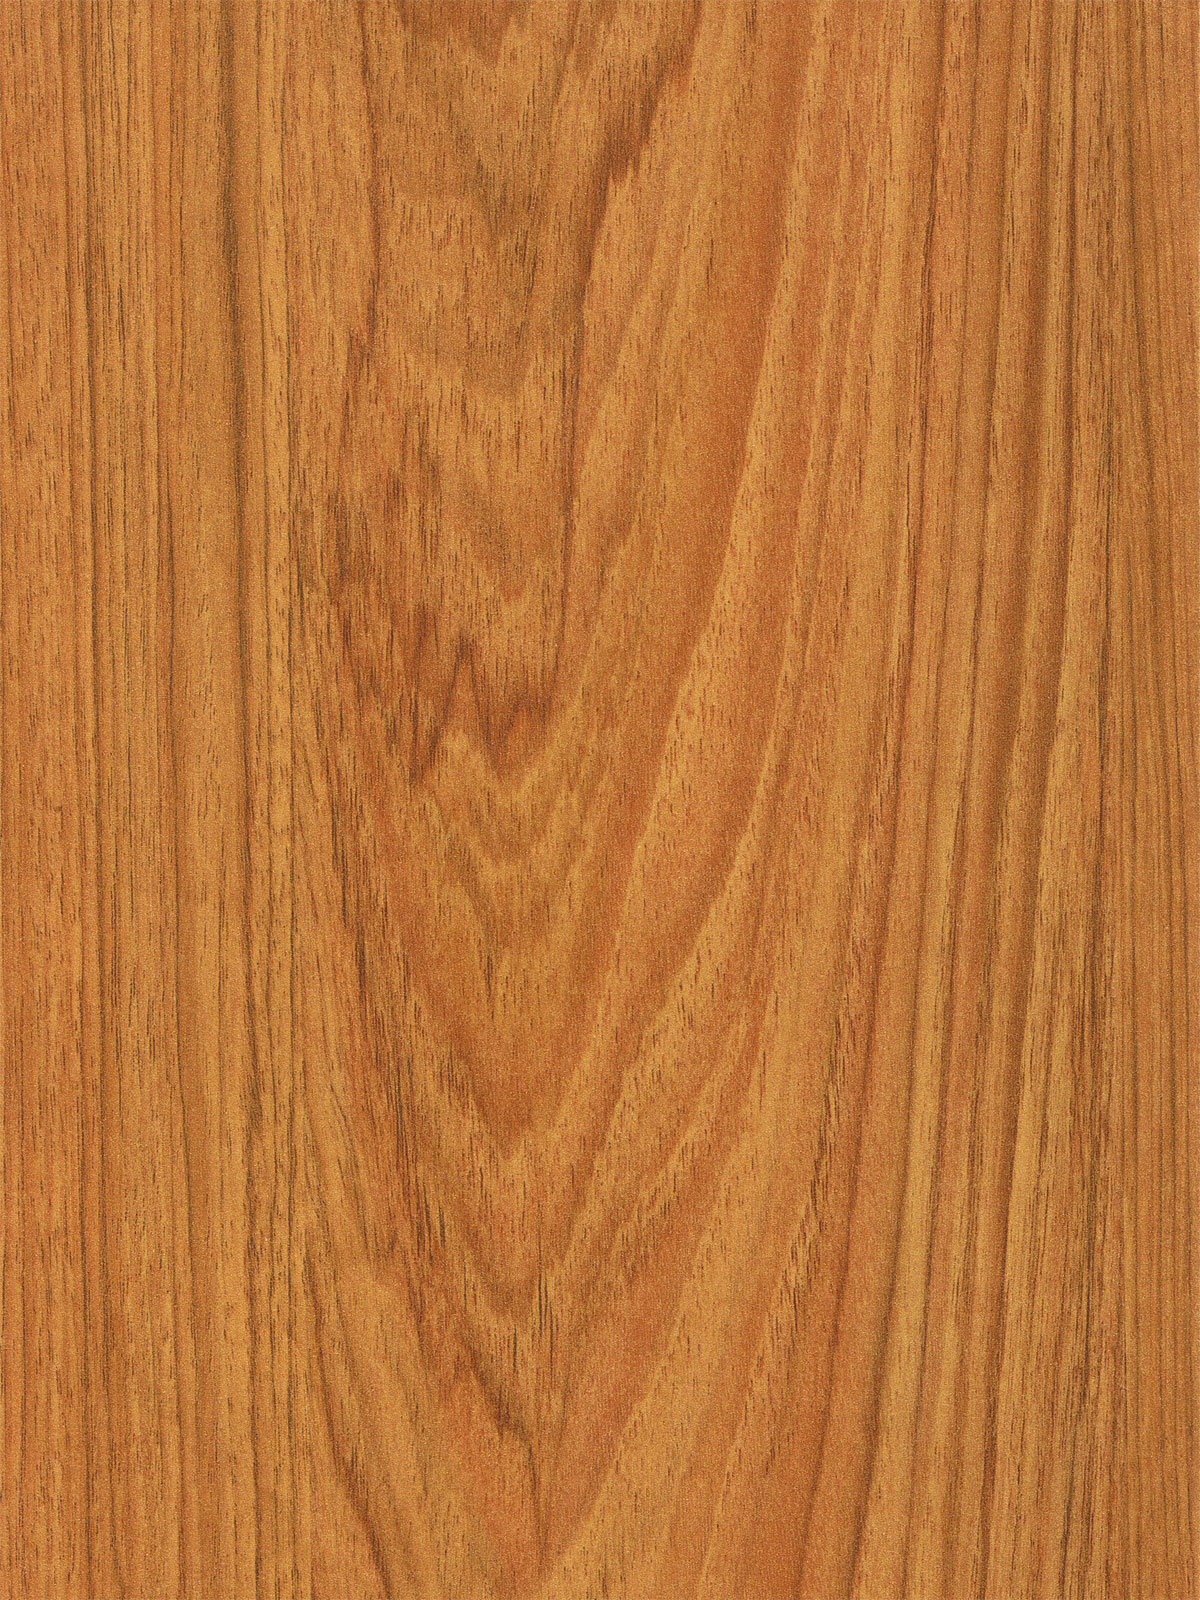 Laminate flooring colors wood floors for Shades of laminate flooring